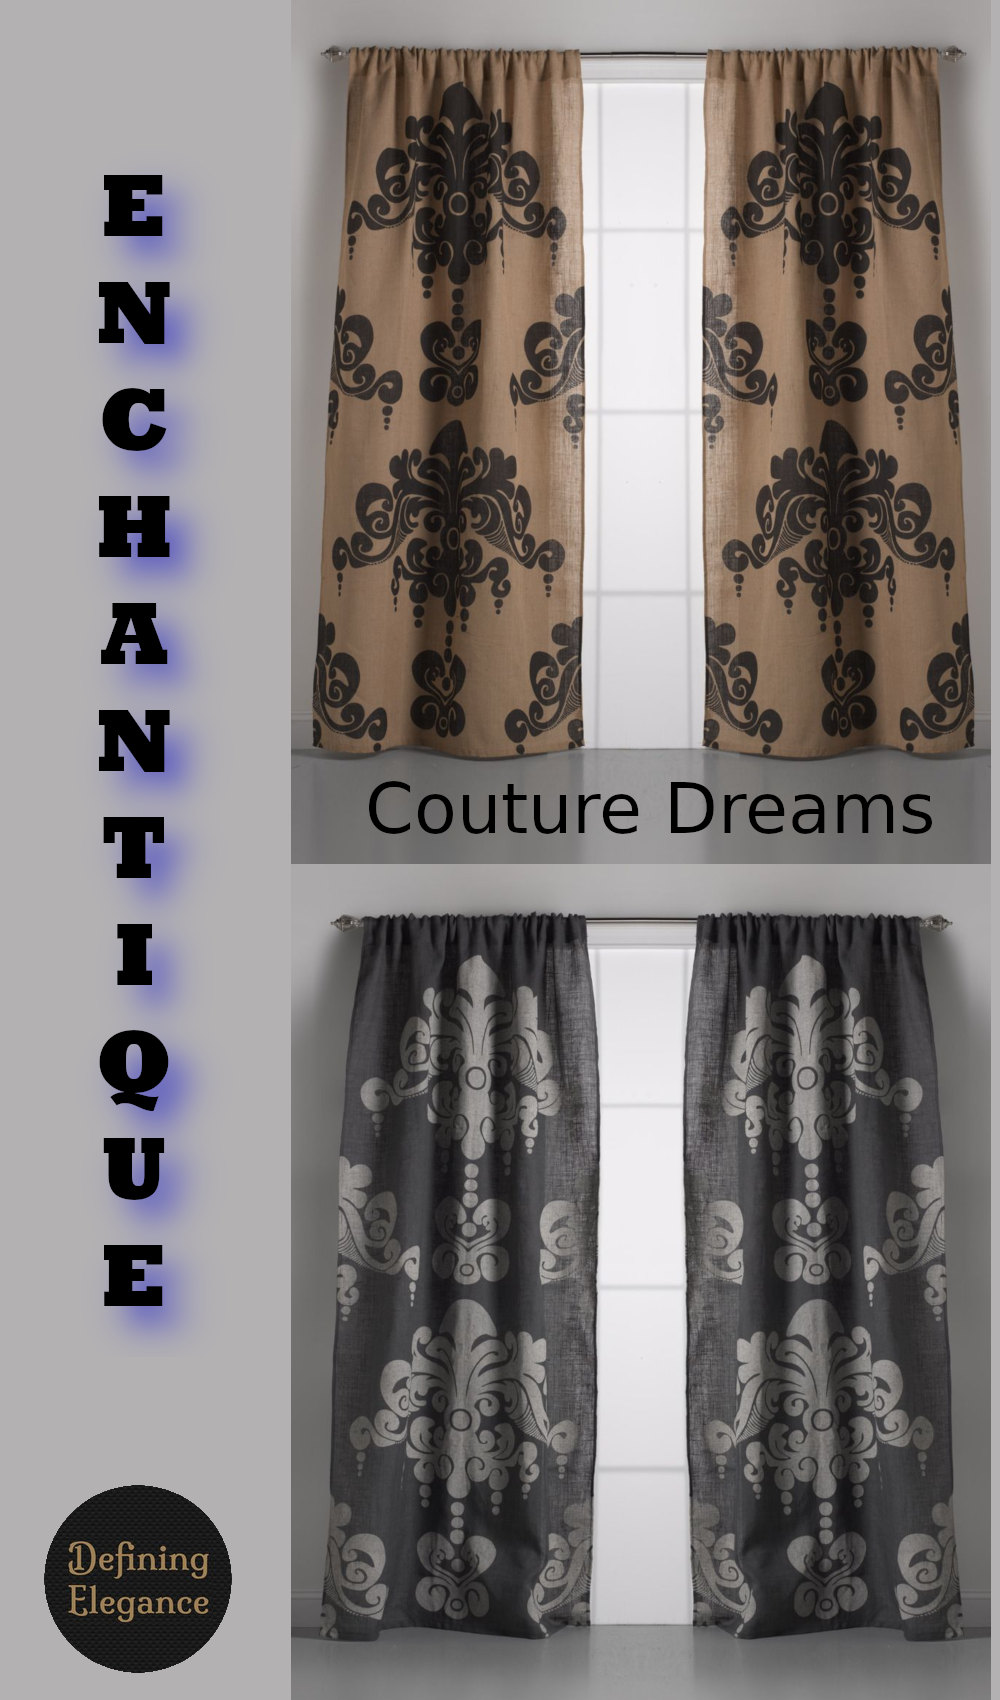 Couture Dreams Enchantique Jute Window Curtain